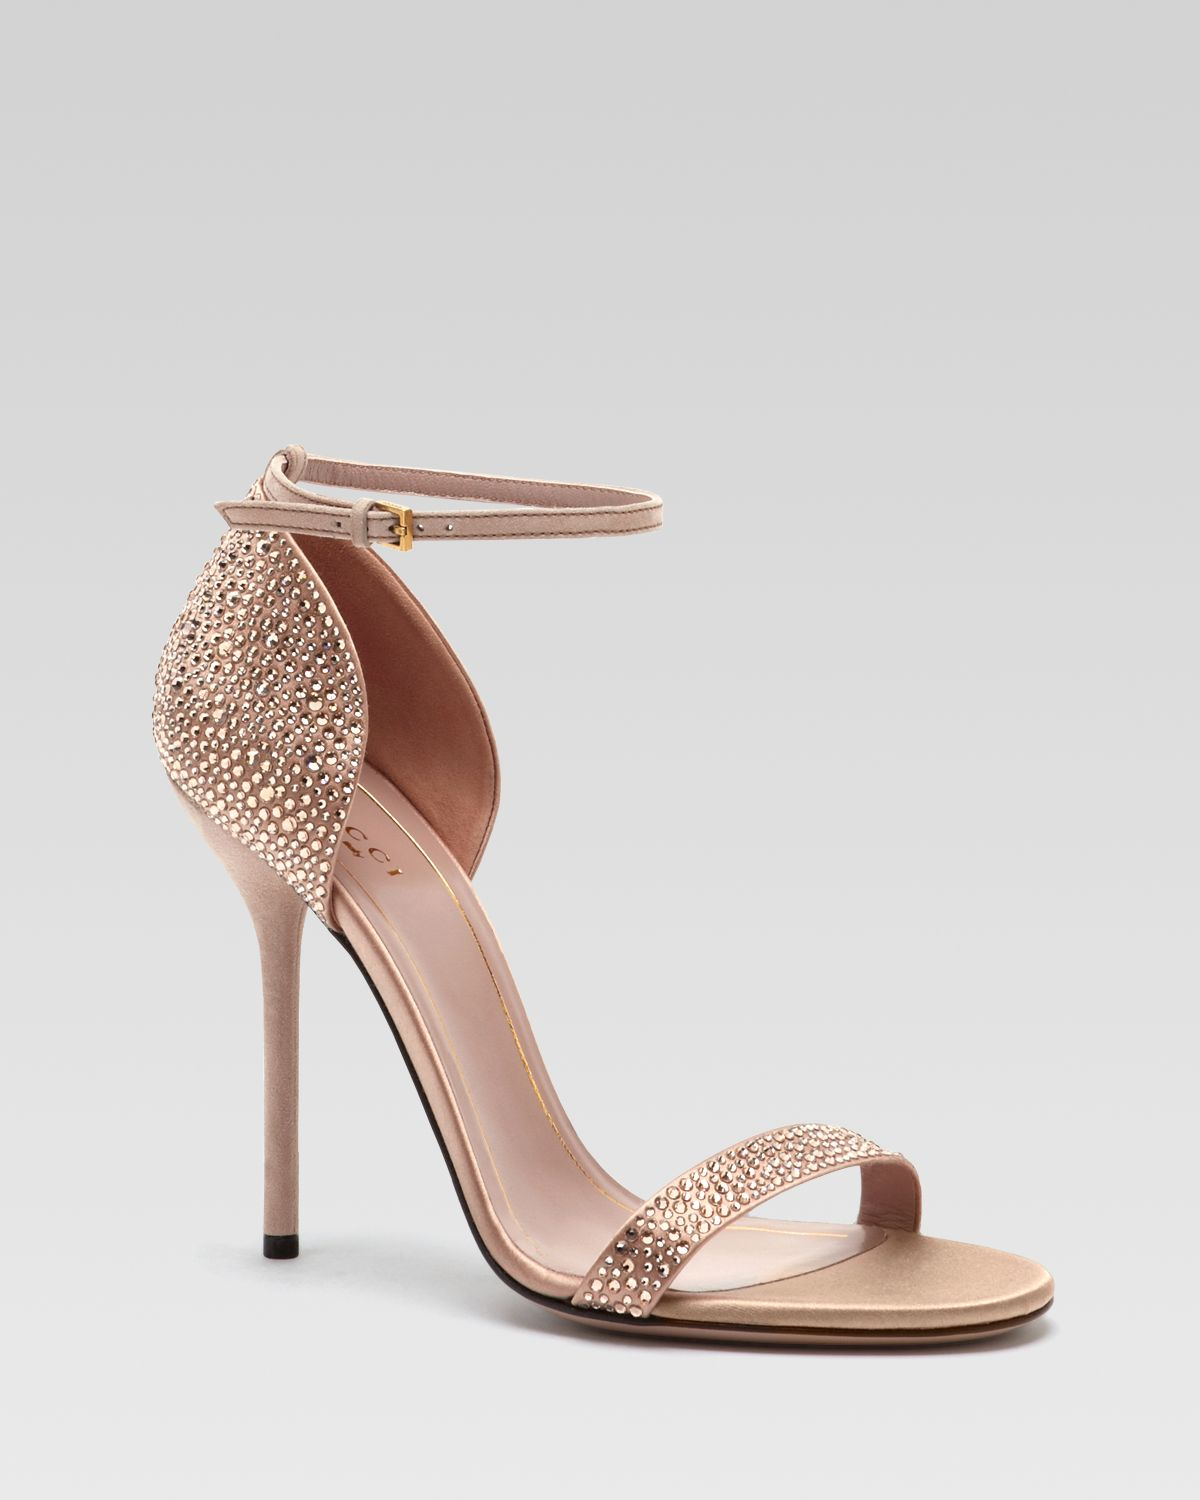 Gucci noah evening sandal in metallic lyst for Gold dress sandals for wedding